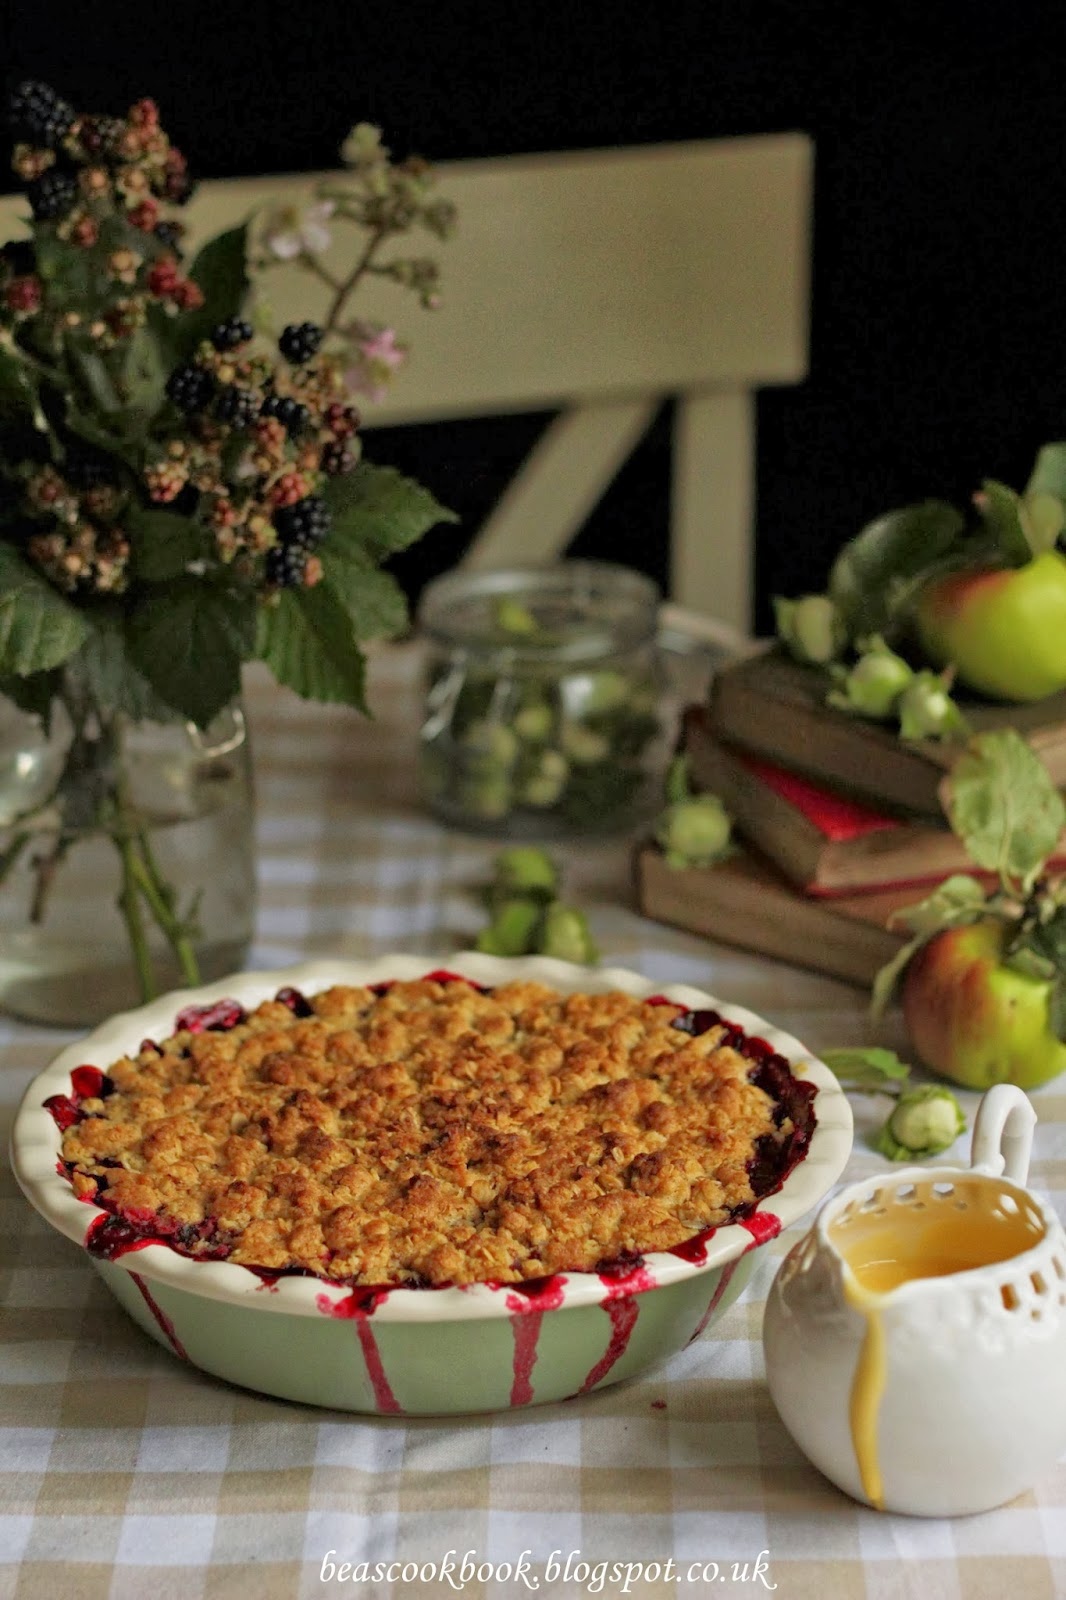 Bea's cookbook: APPLE AND BLACKBERRY CRUMBLE